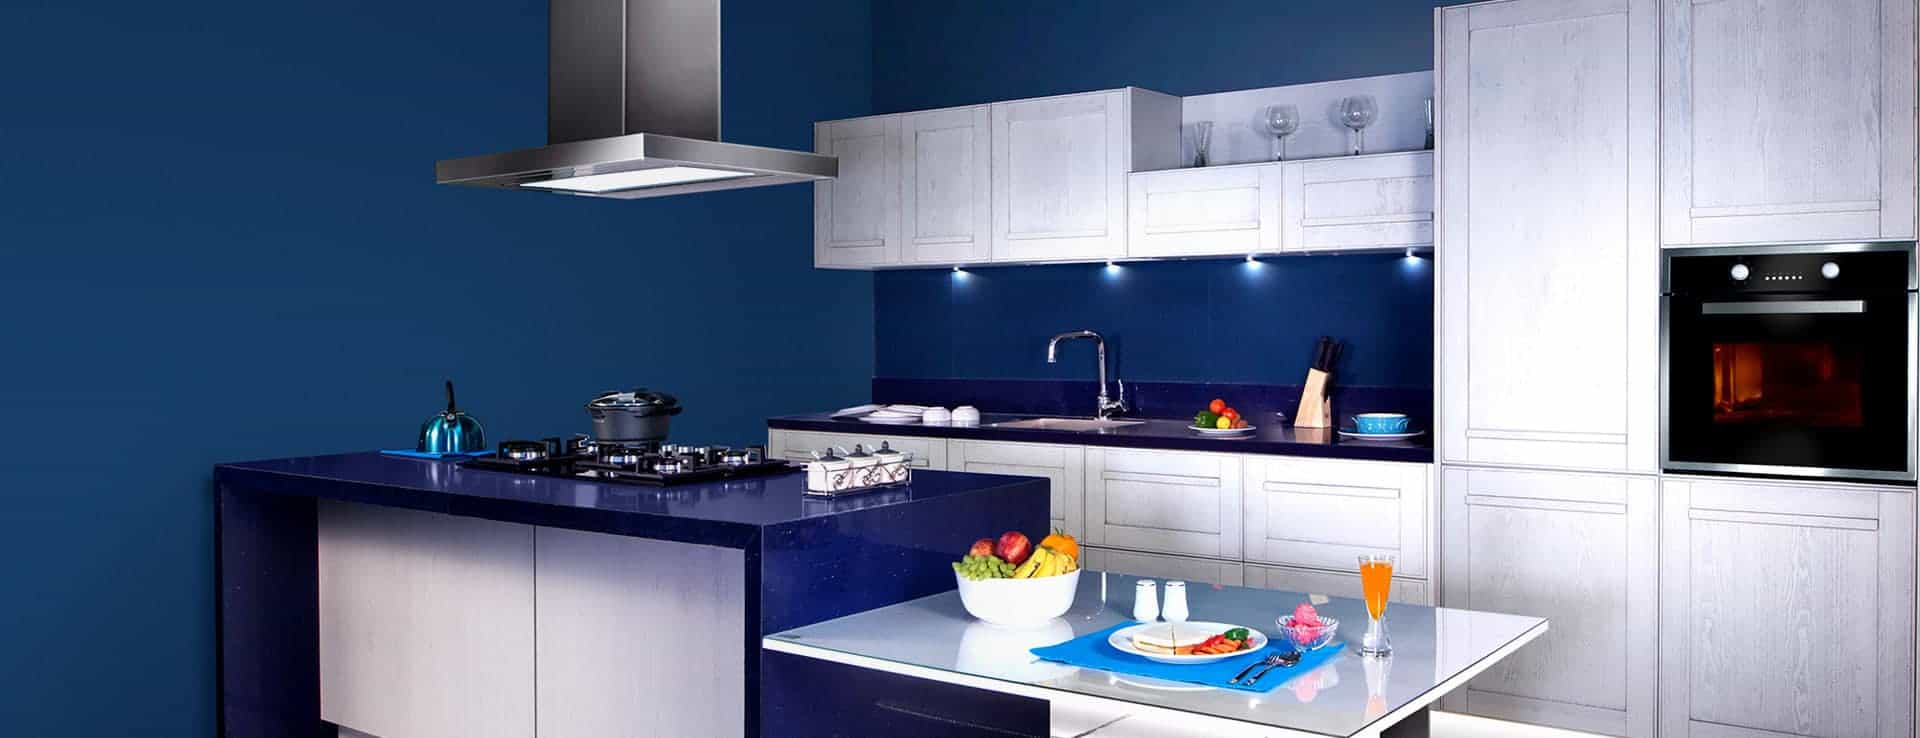 Sleek Kitchens interior 1